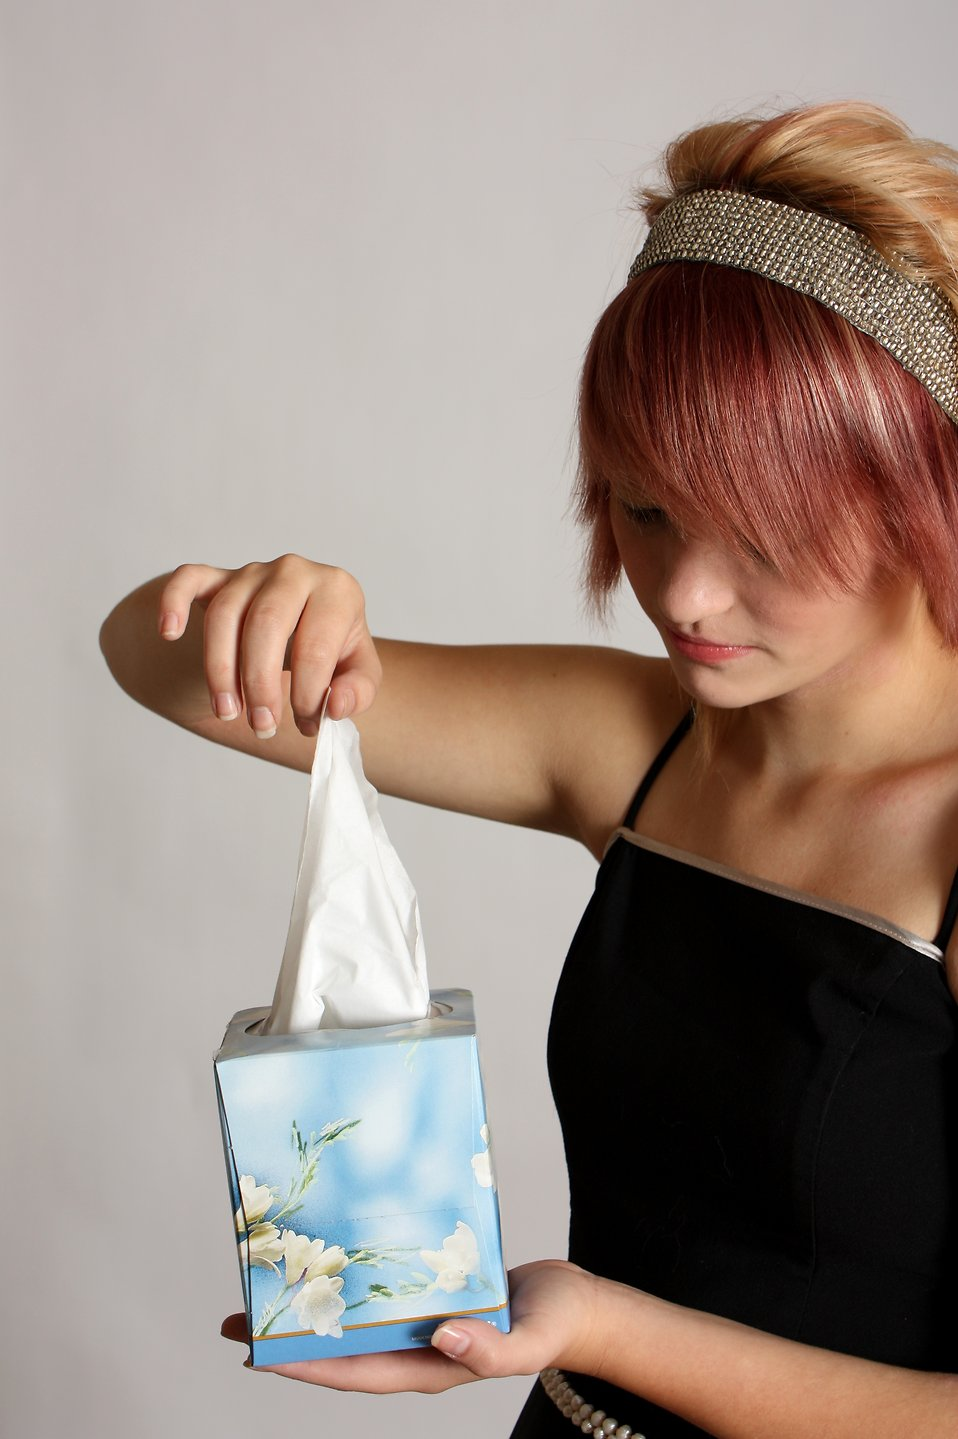 A beautiful young girl holding a box of tissues : Free Stock Photo